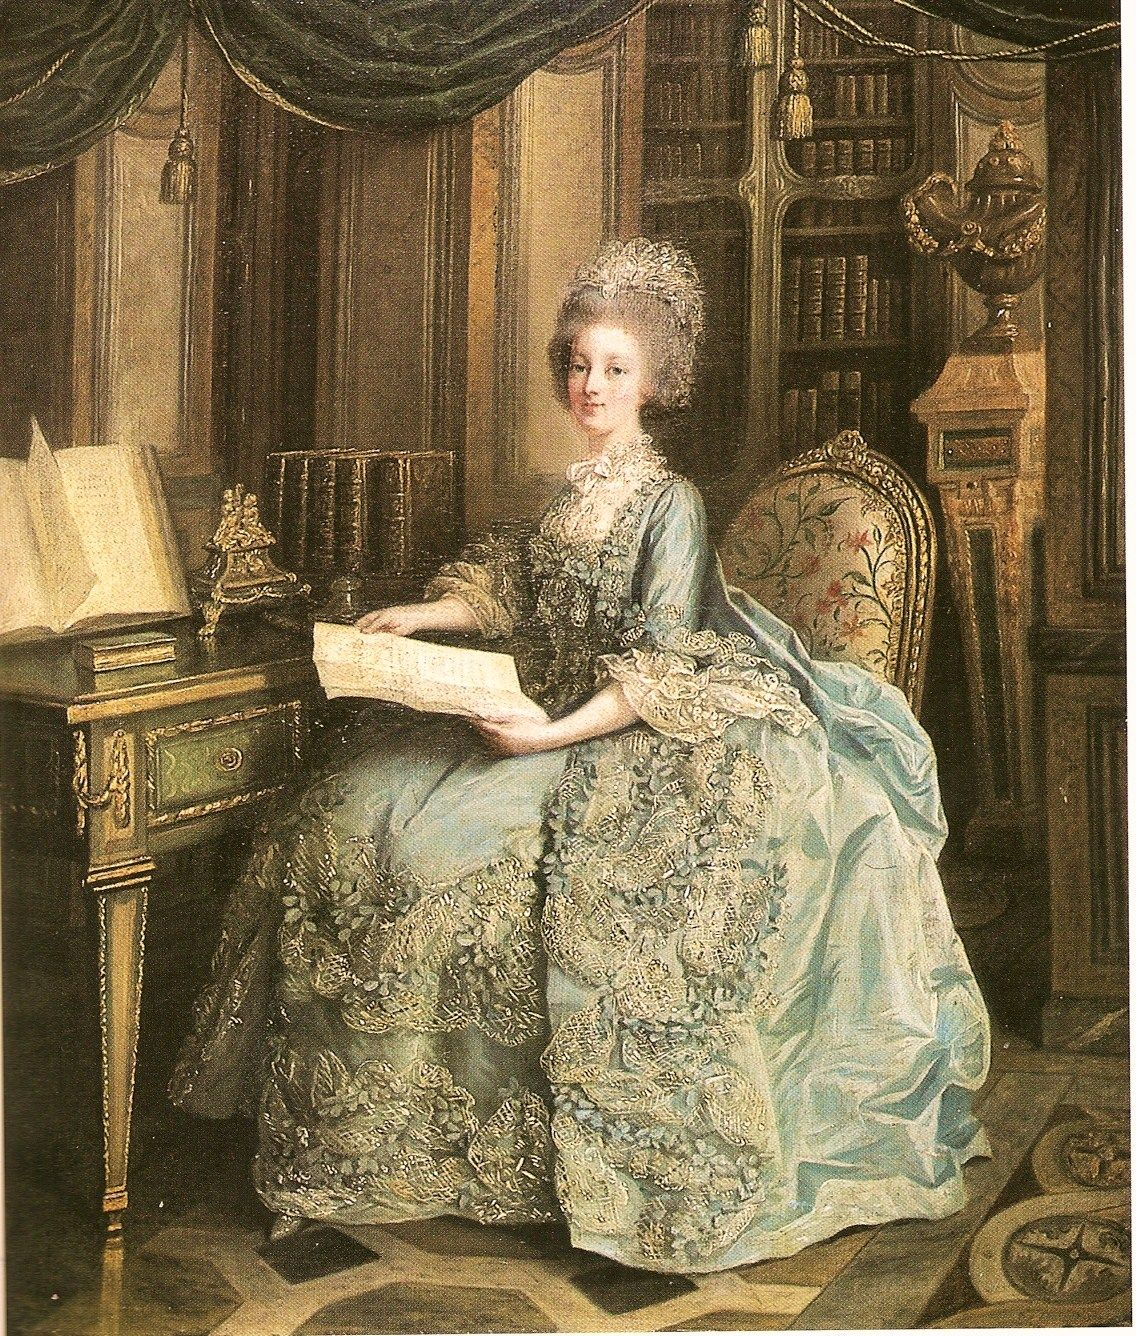 1776 Madame Sophie resting in her library by Louis Lie Perrin-Salbreux